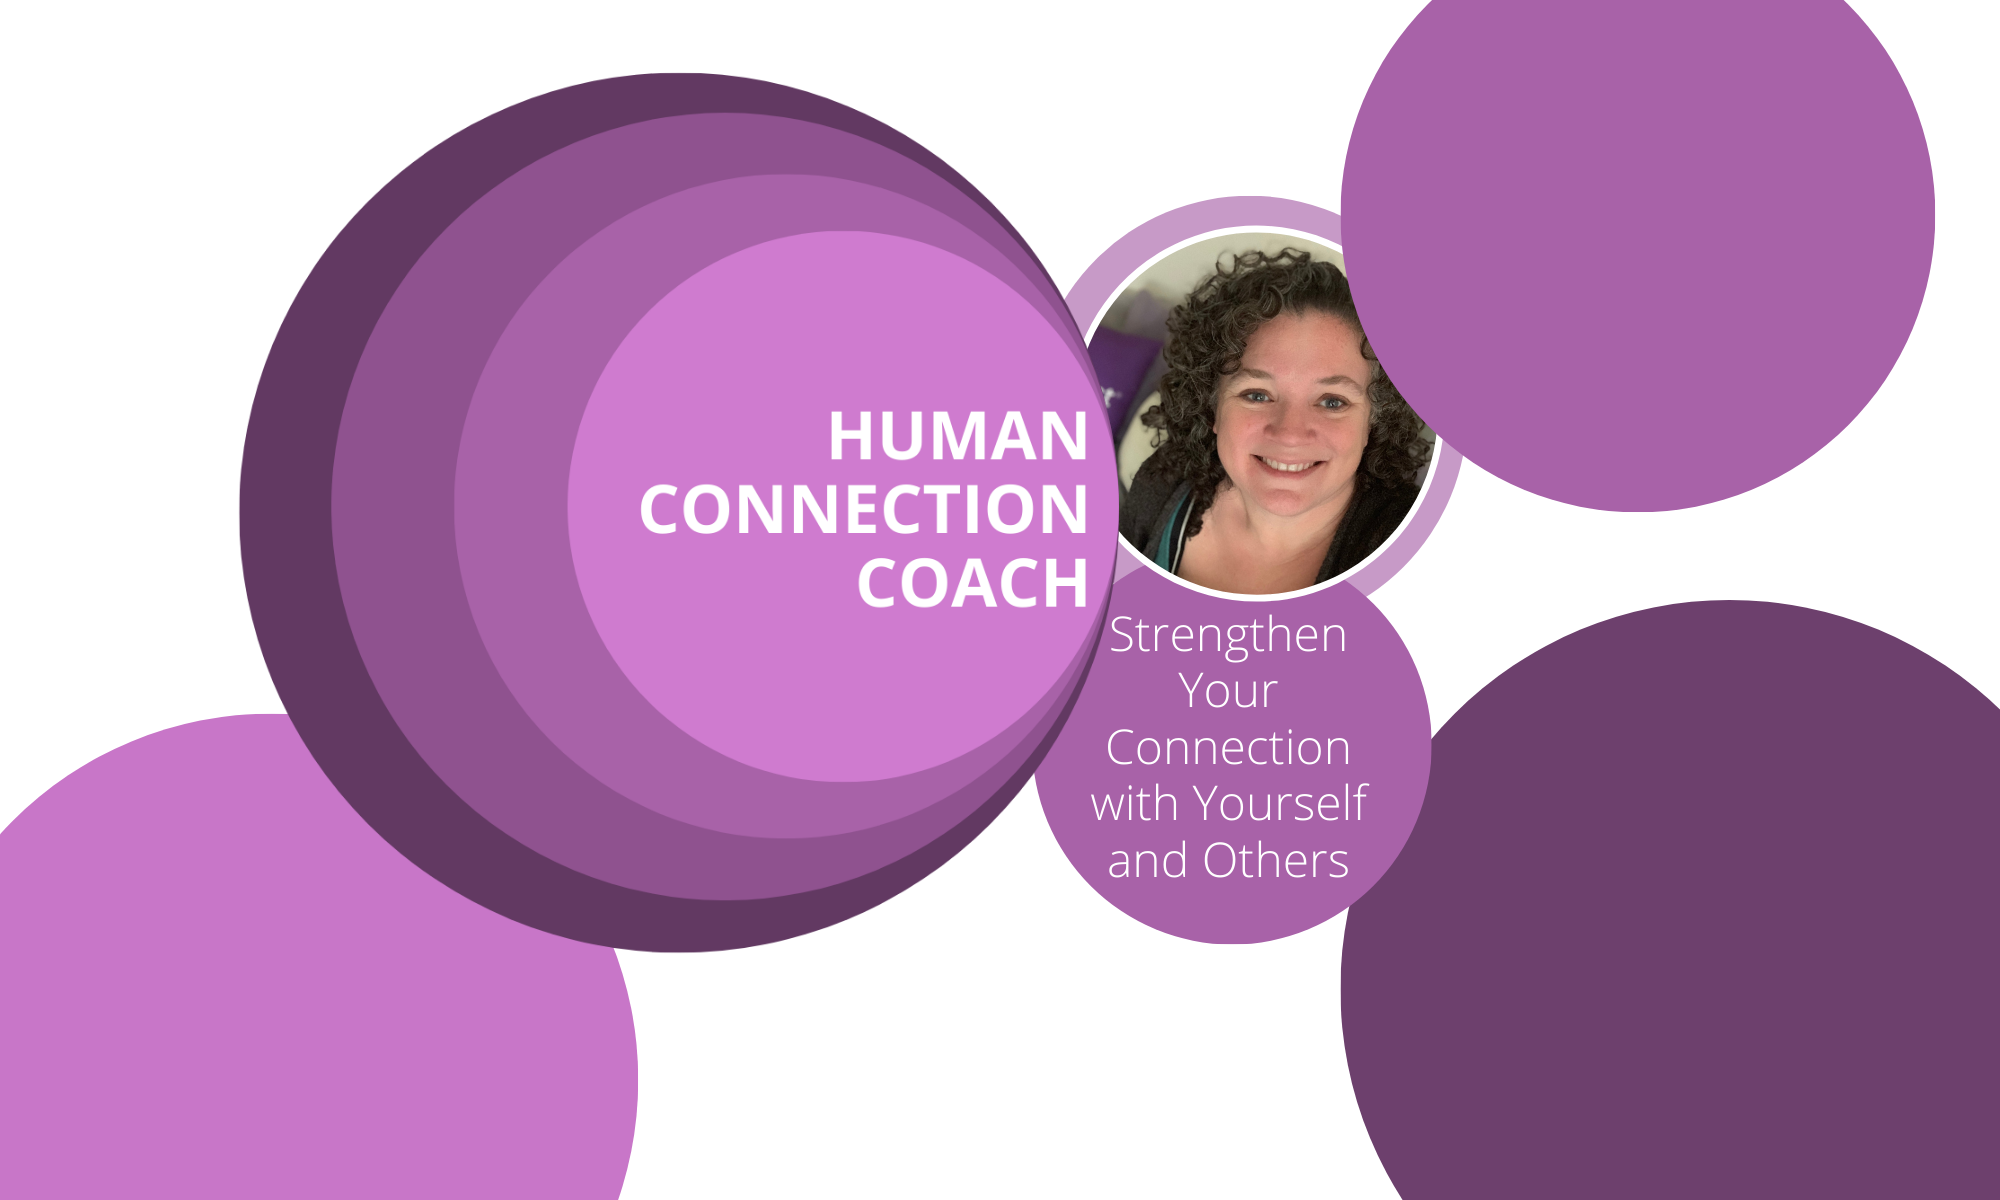 Human Connection Coaching